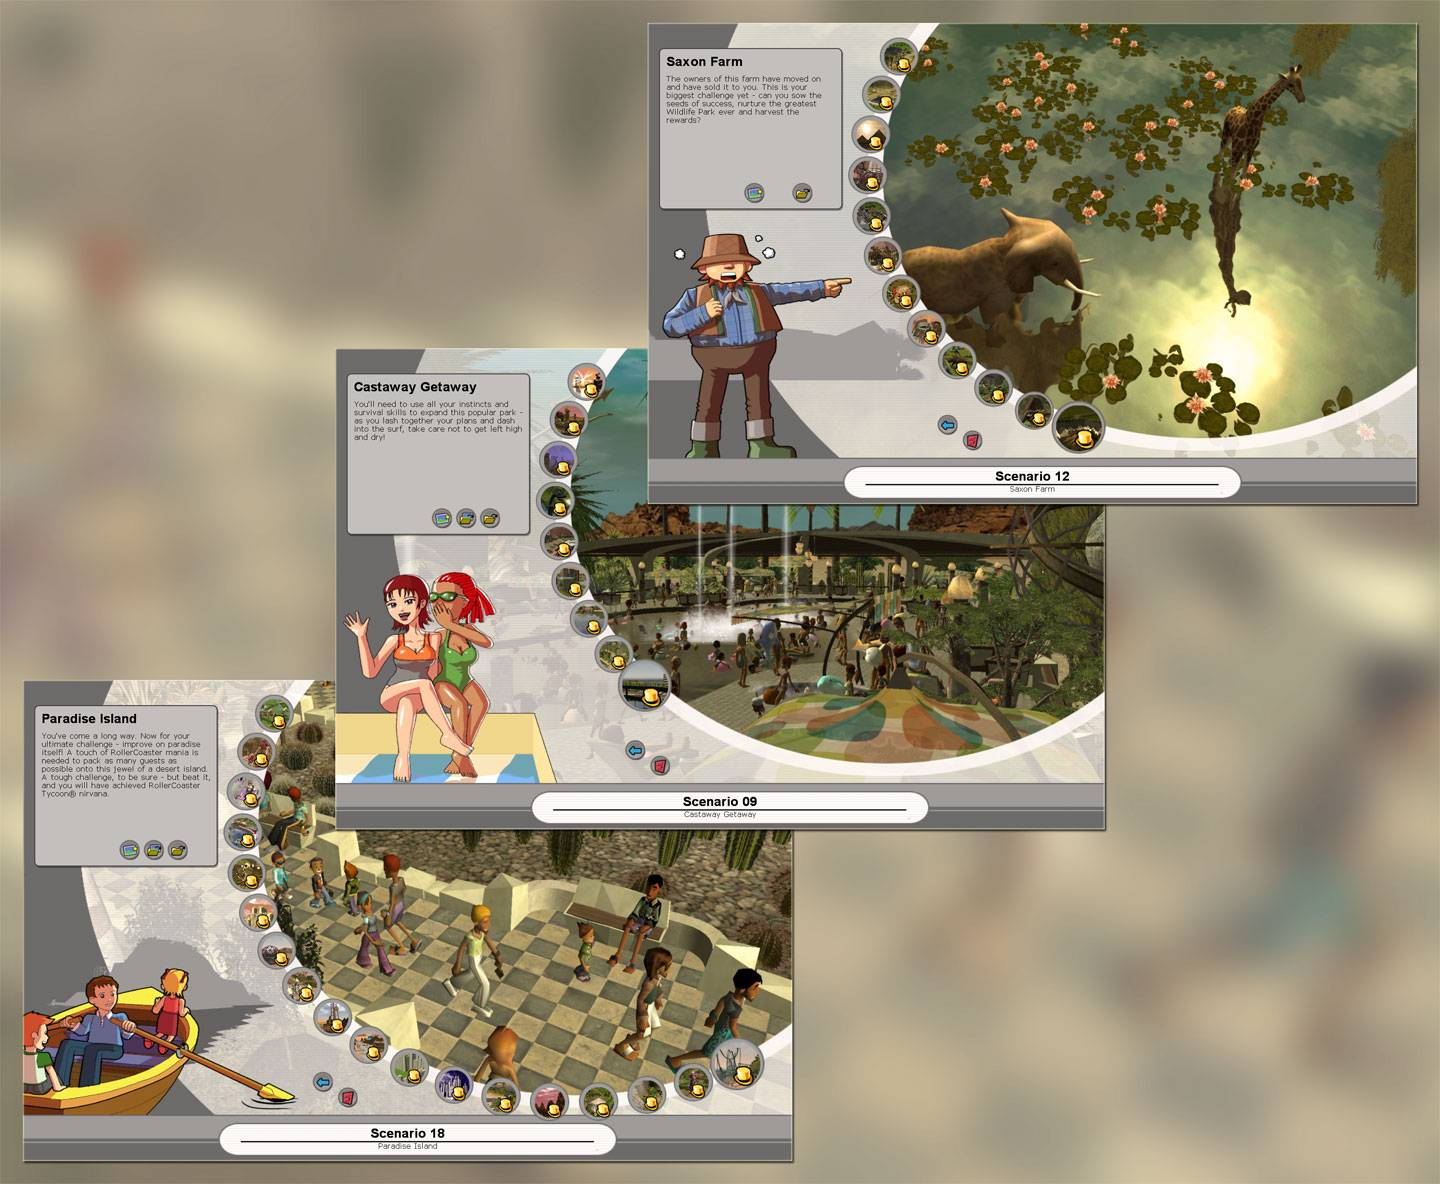 Image Displaying Campaign Expansion Headers Showing Tycoon Status Earned In All Missions for FlightToAtlantis.net: RCT3 FAQ: How To Unlock All Campaign Scenarios